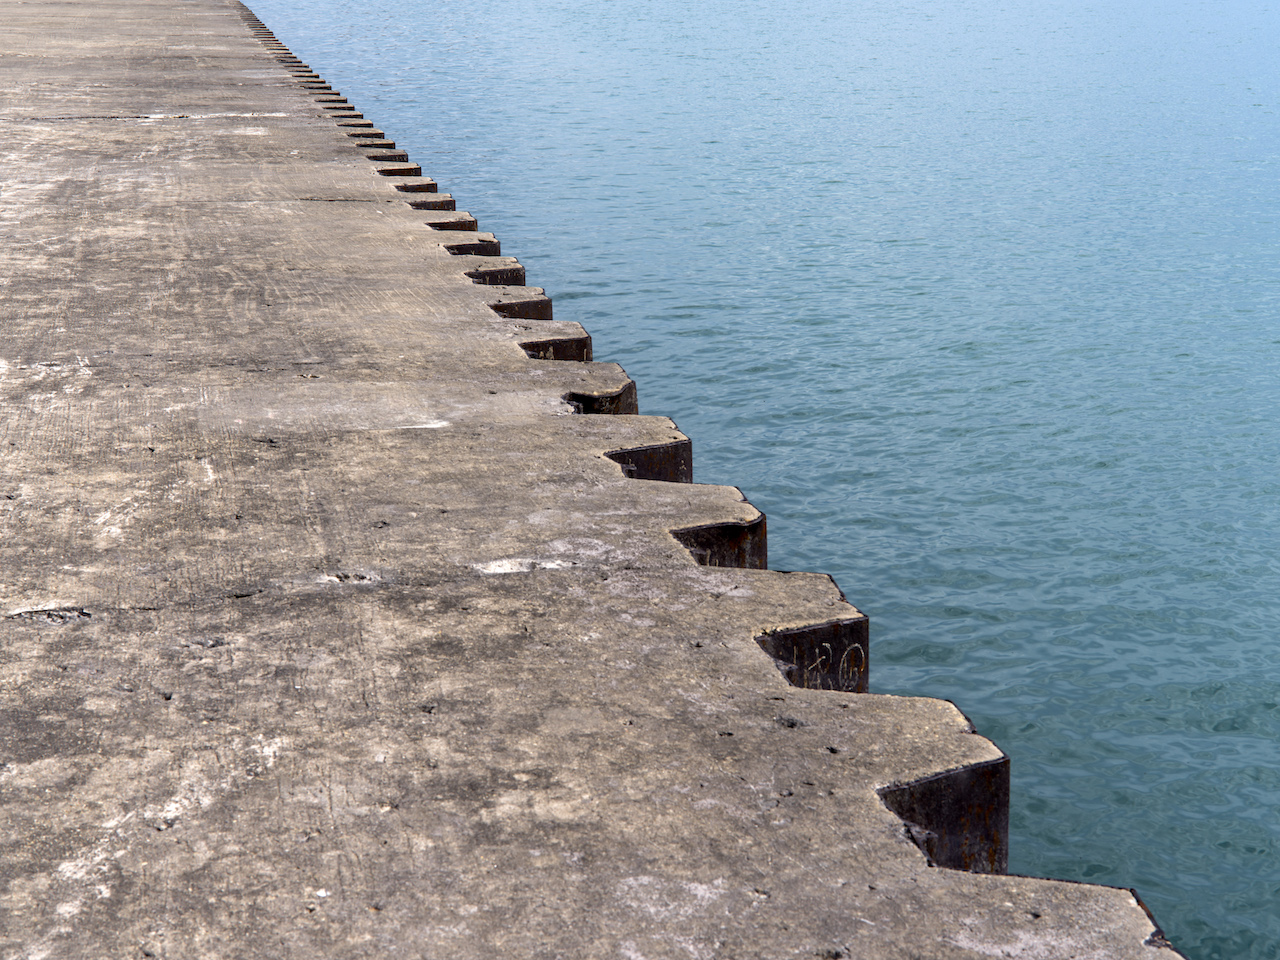 a diagonal of concrete and pilings travel diagonally with blue waters on the right side